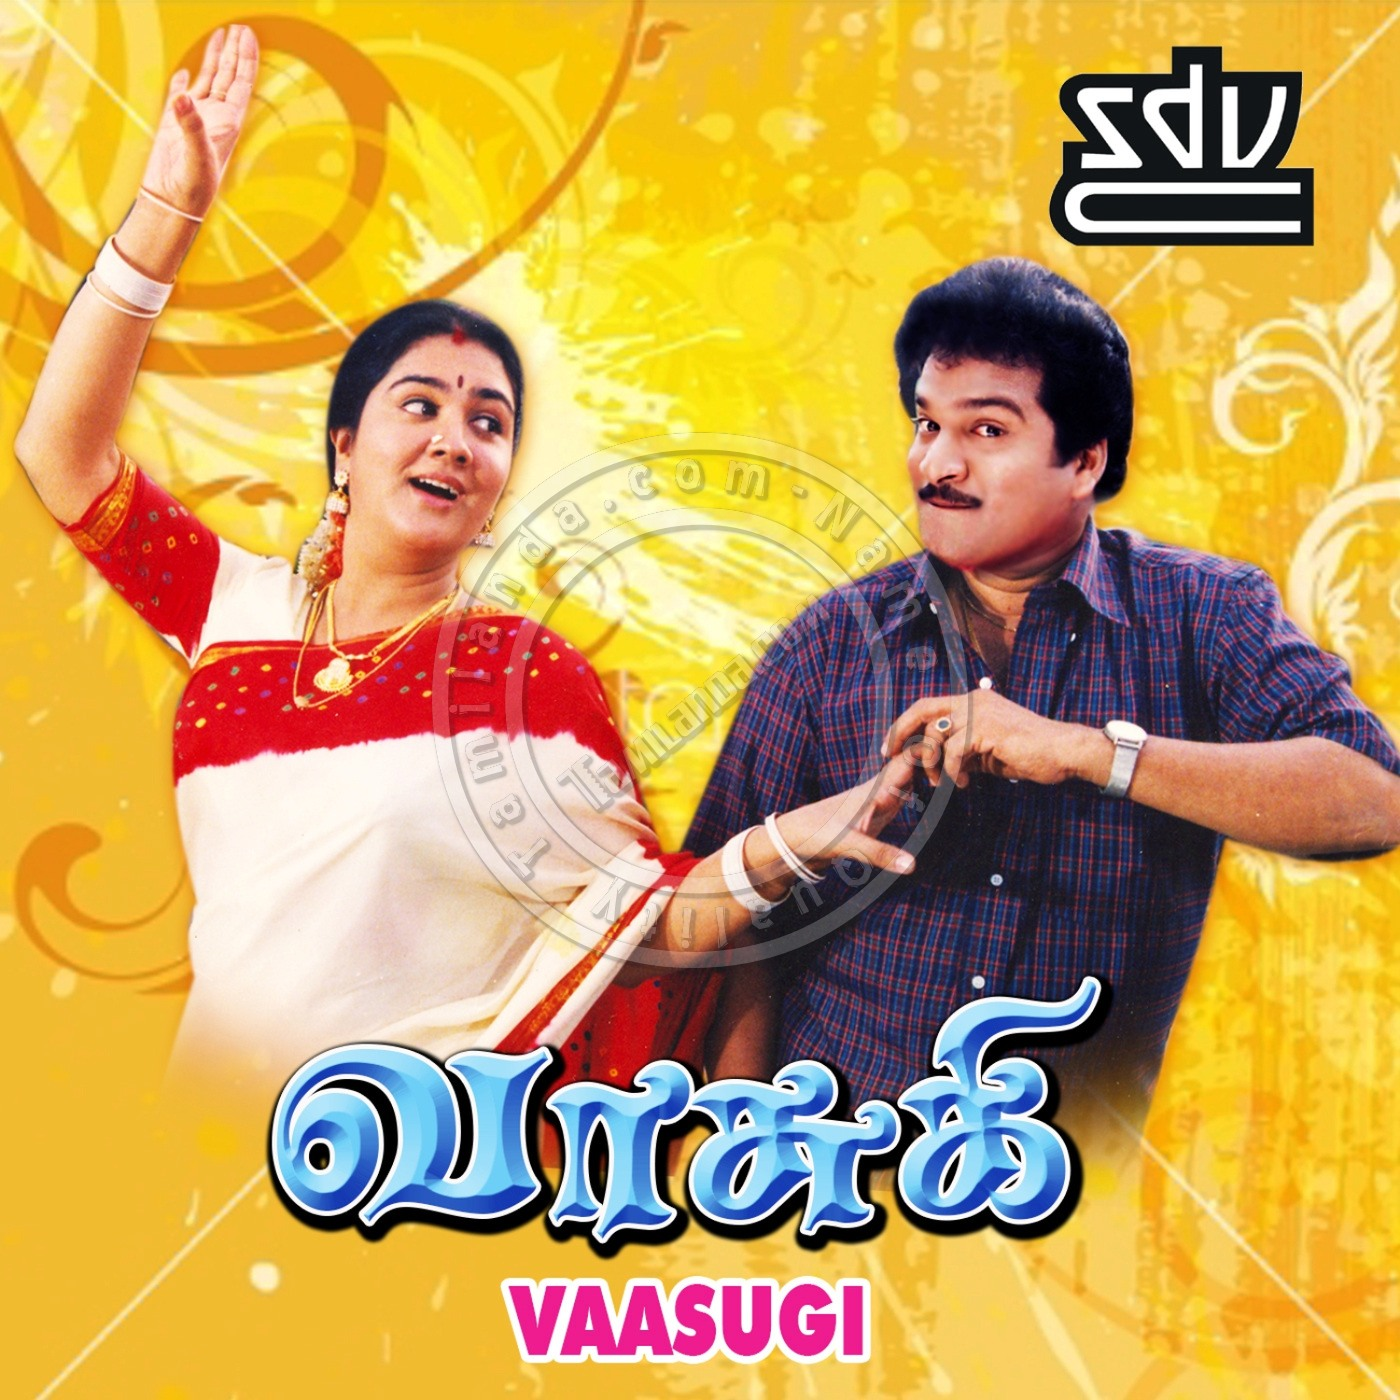 Vaasugi 16 BIT FLAC Songs